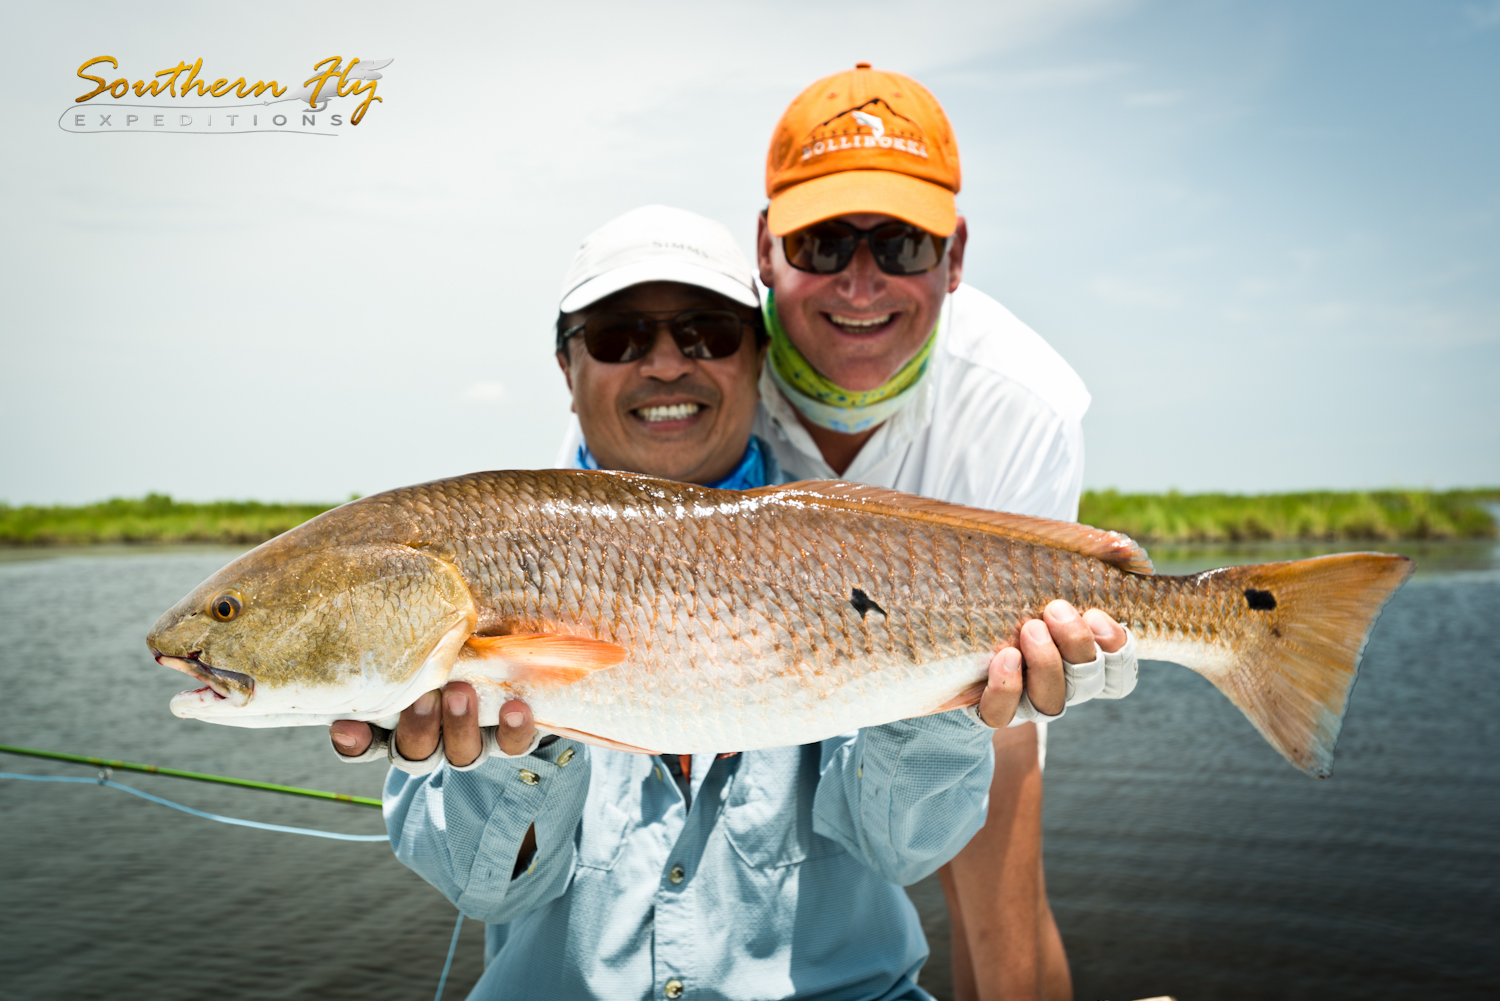 Fly Fishing for Redfish Photos from June 2015 with Southern Fly Expeditions